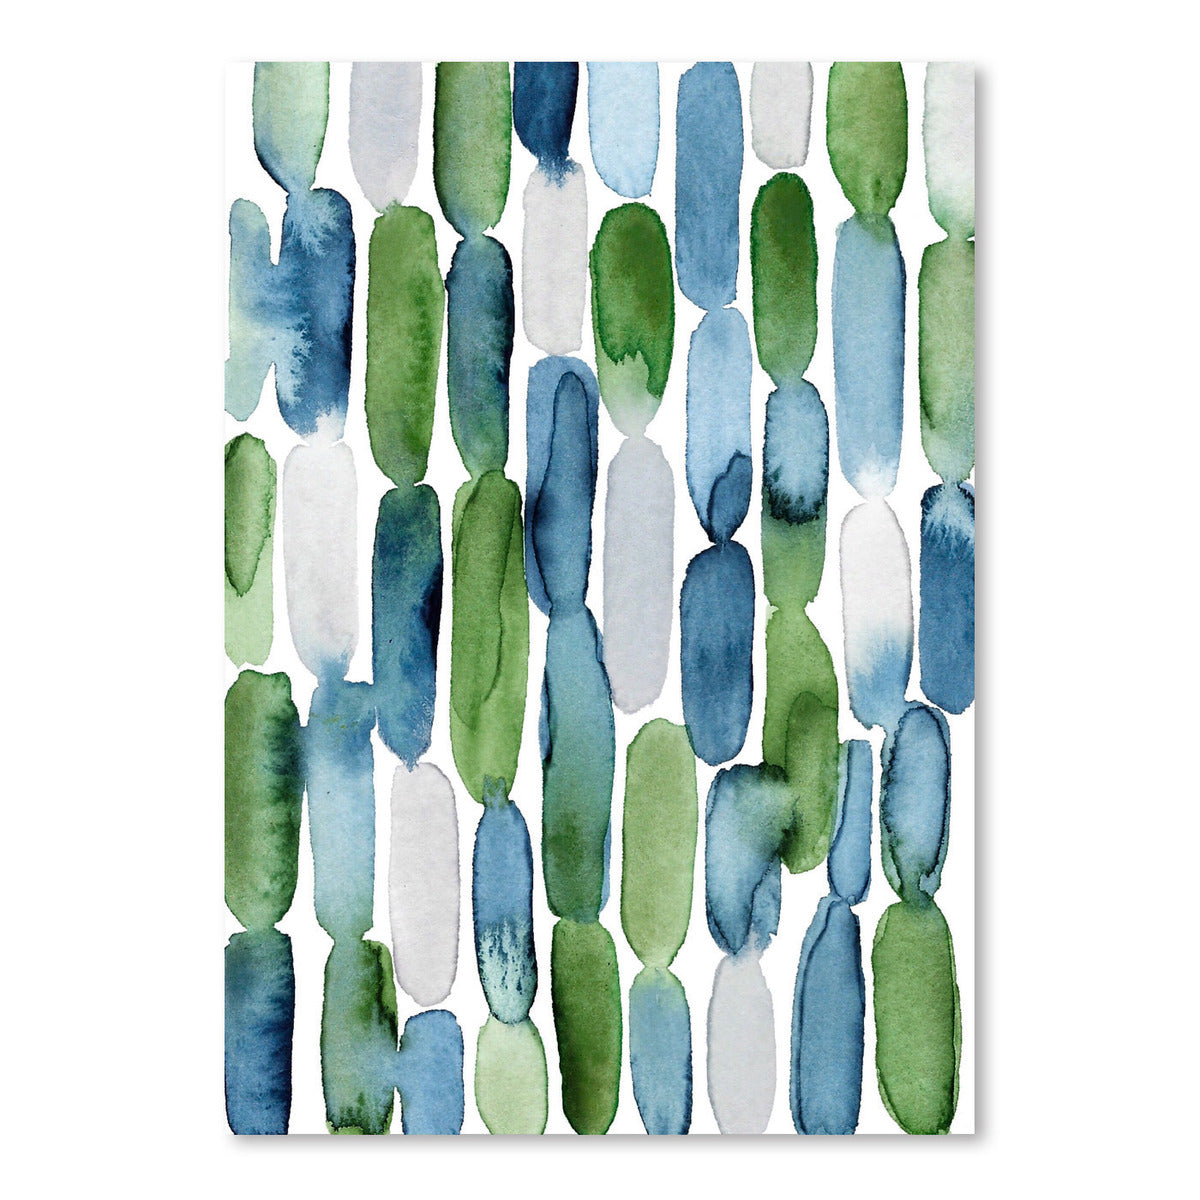 Watercolor Blue Green Strokes by Lisa Nohren - Art Print - Americanflat